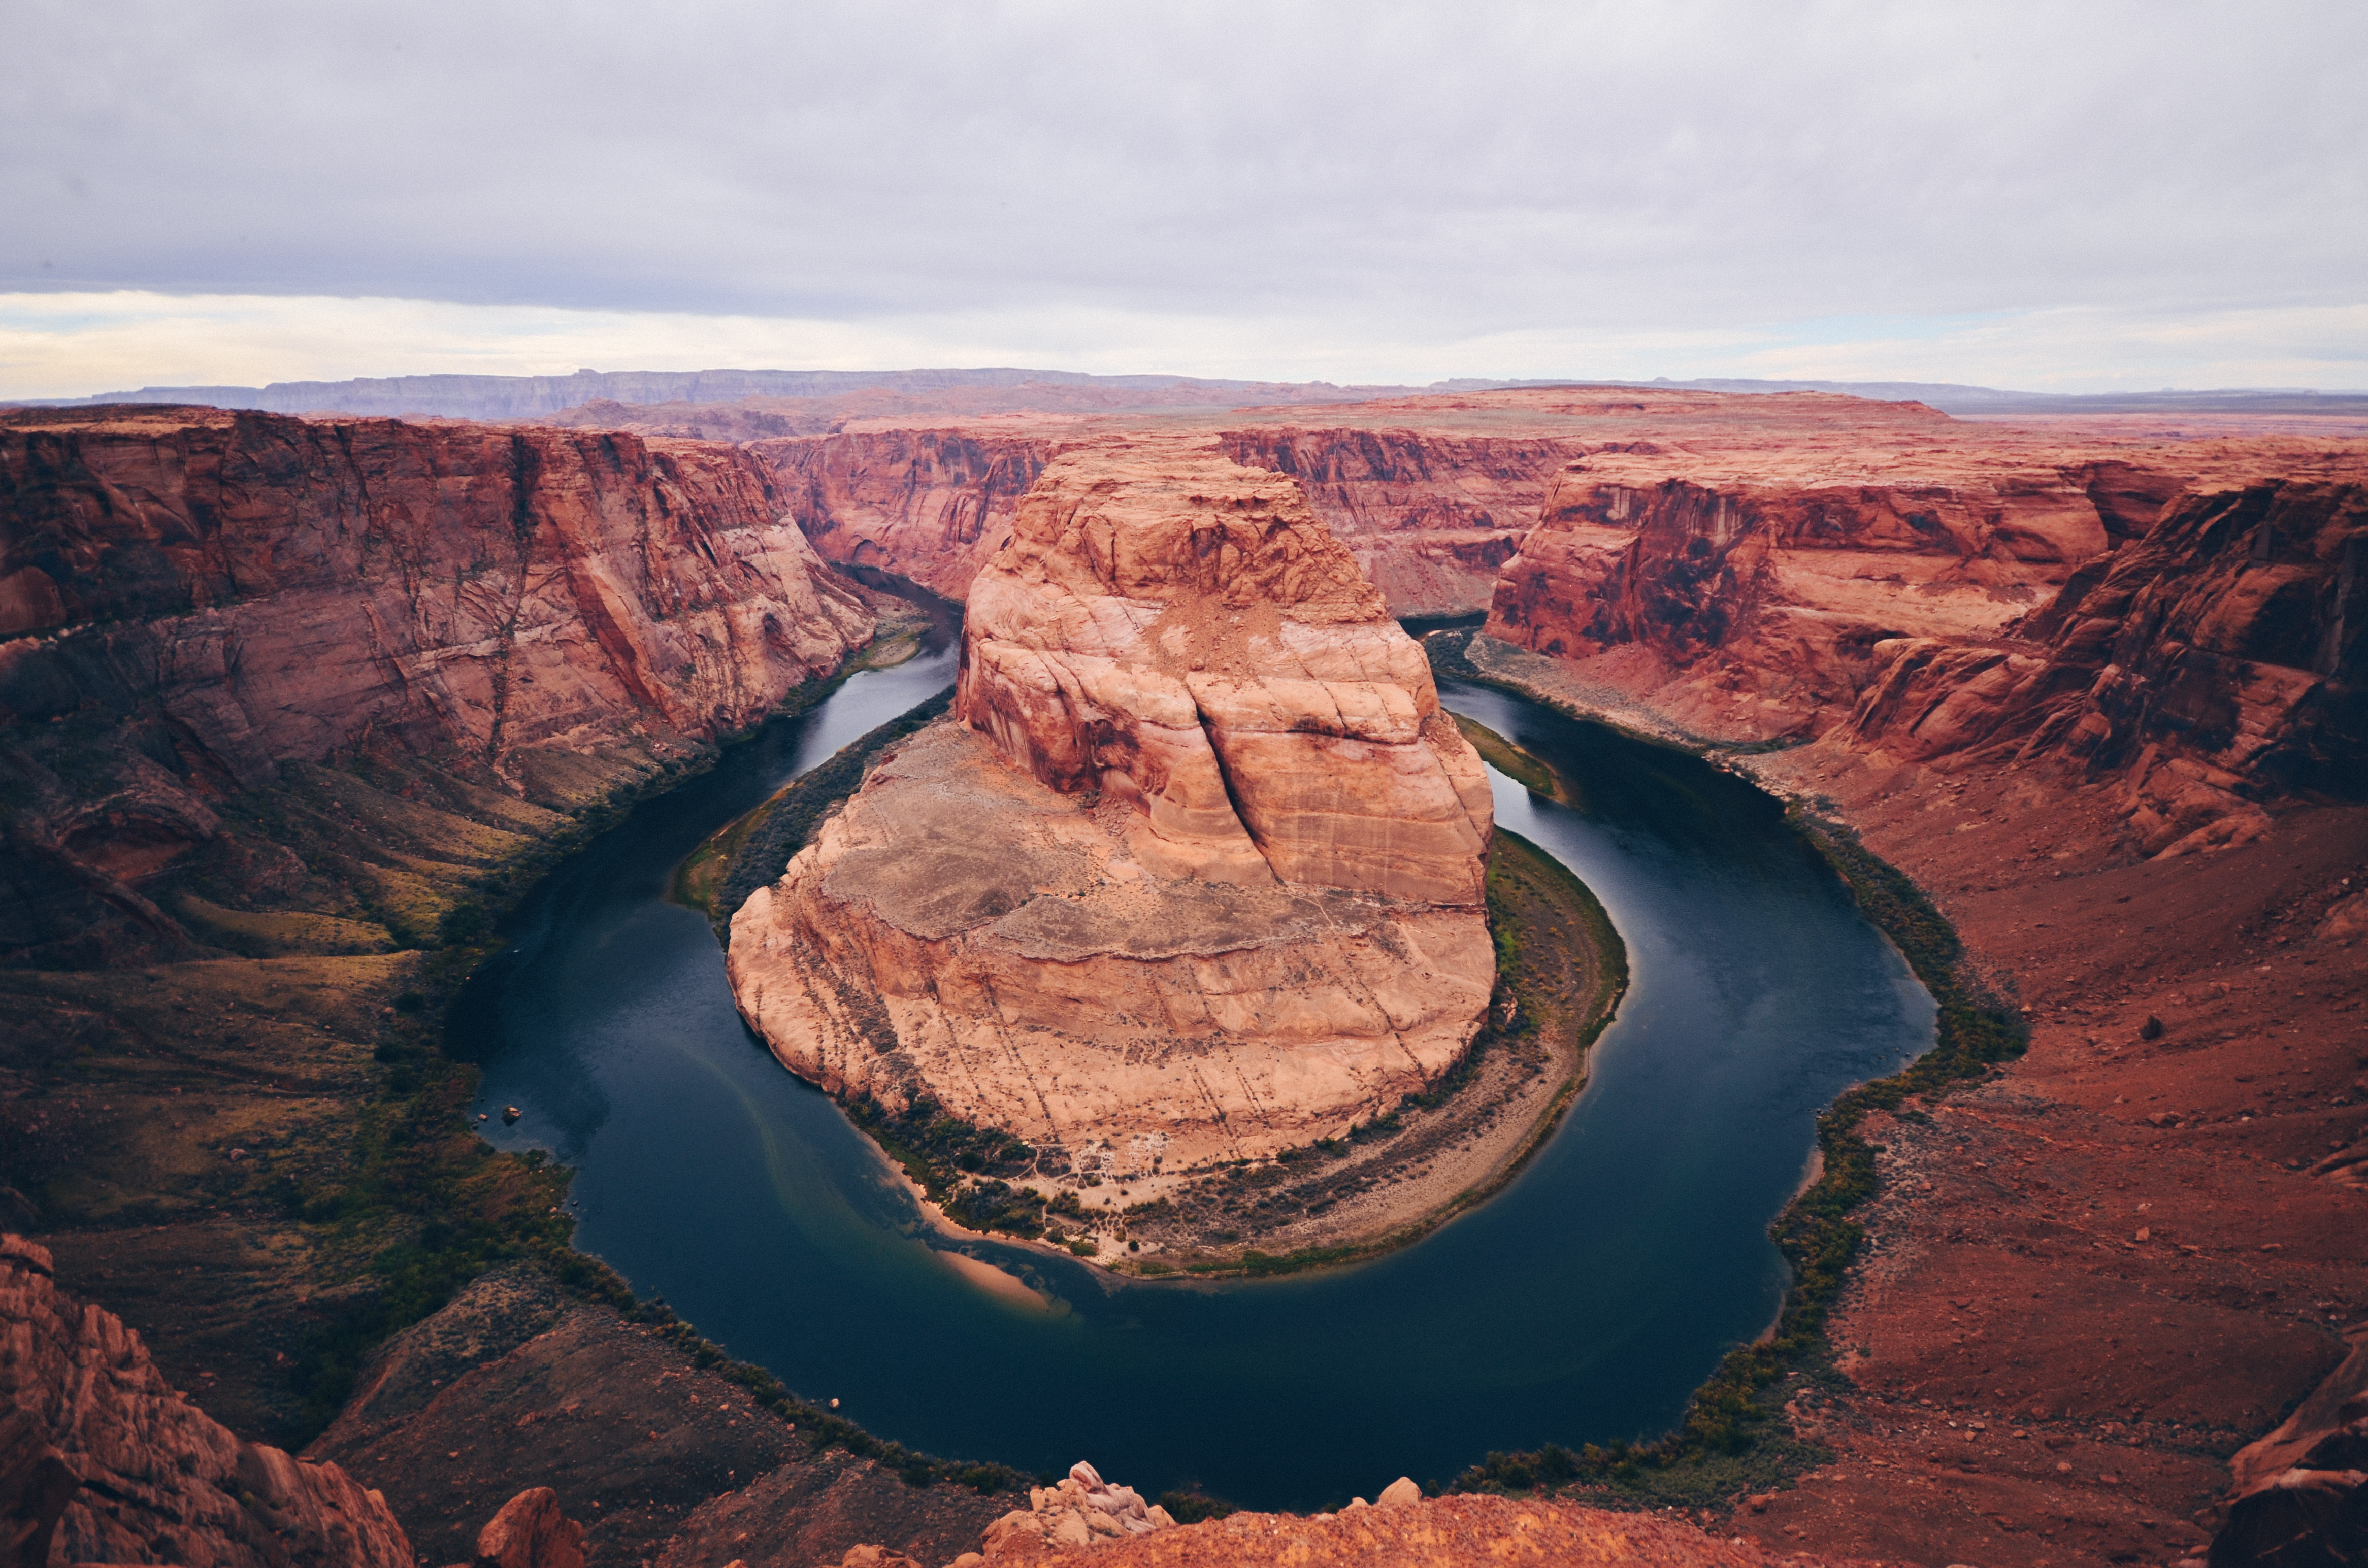 Panoramic shot of the famous Horseshoe Bend and surrounding canyons.